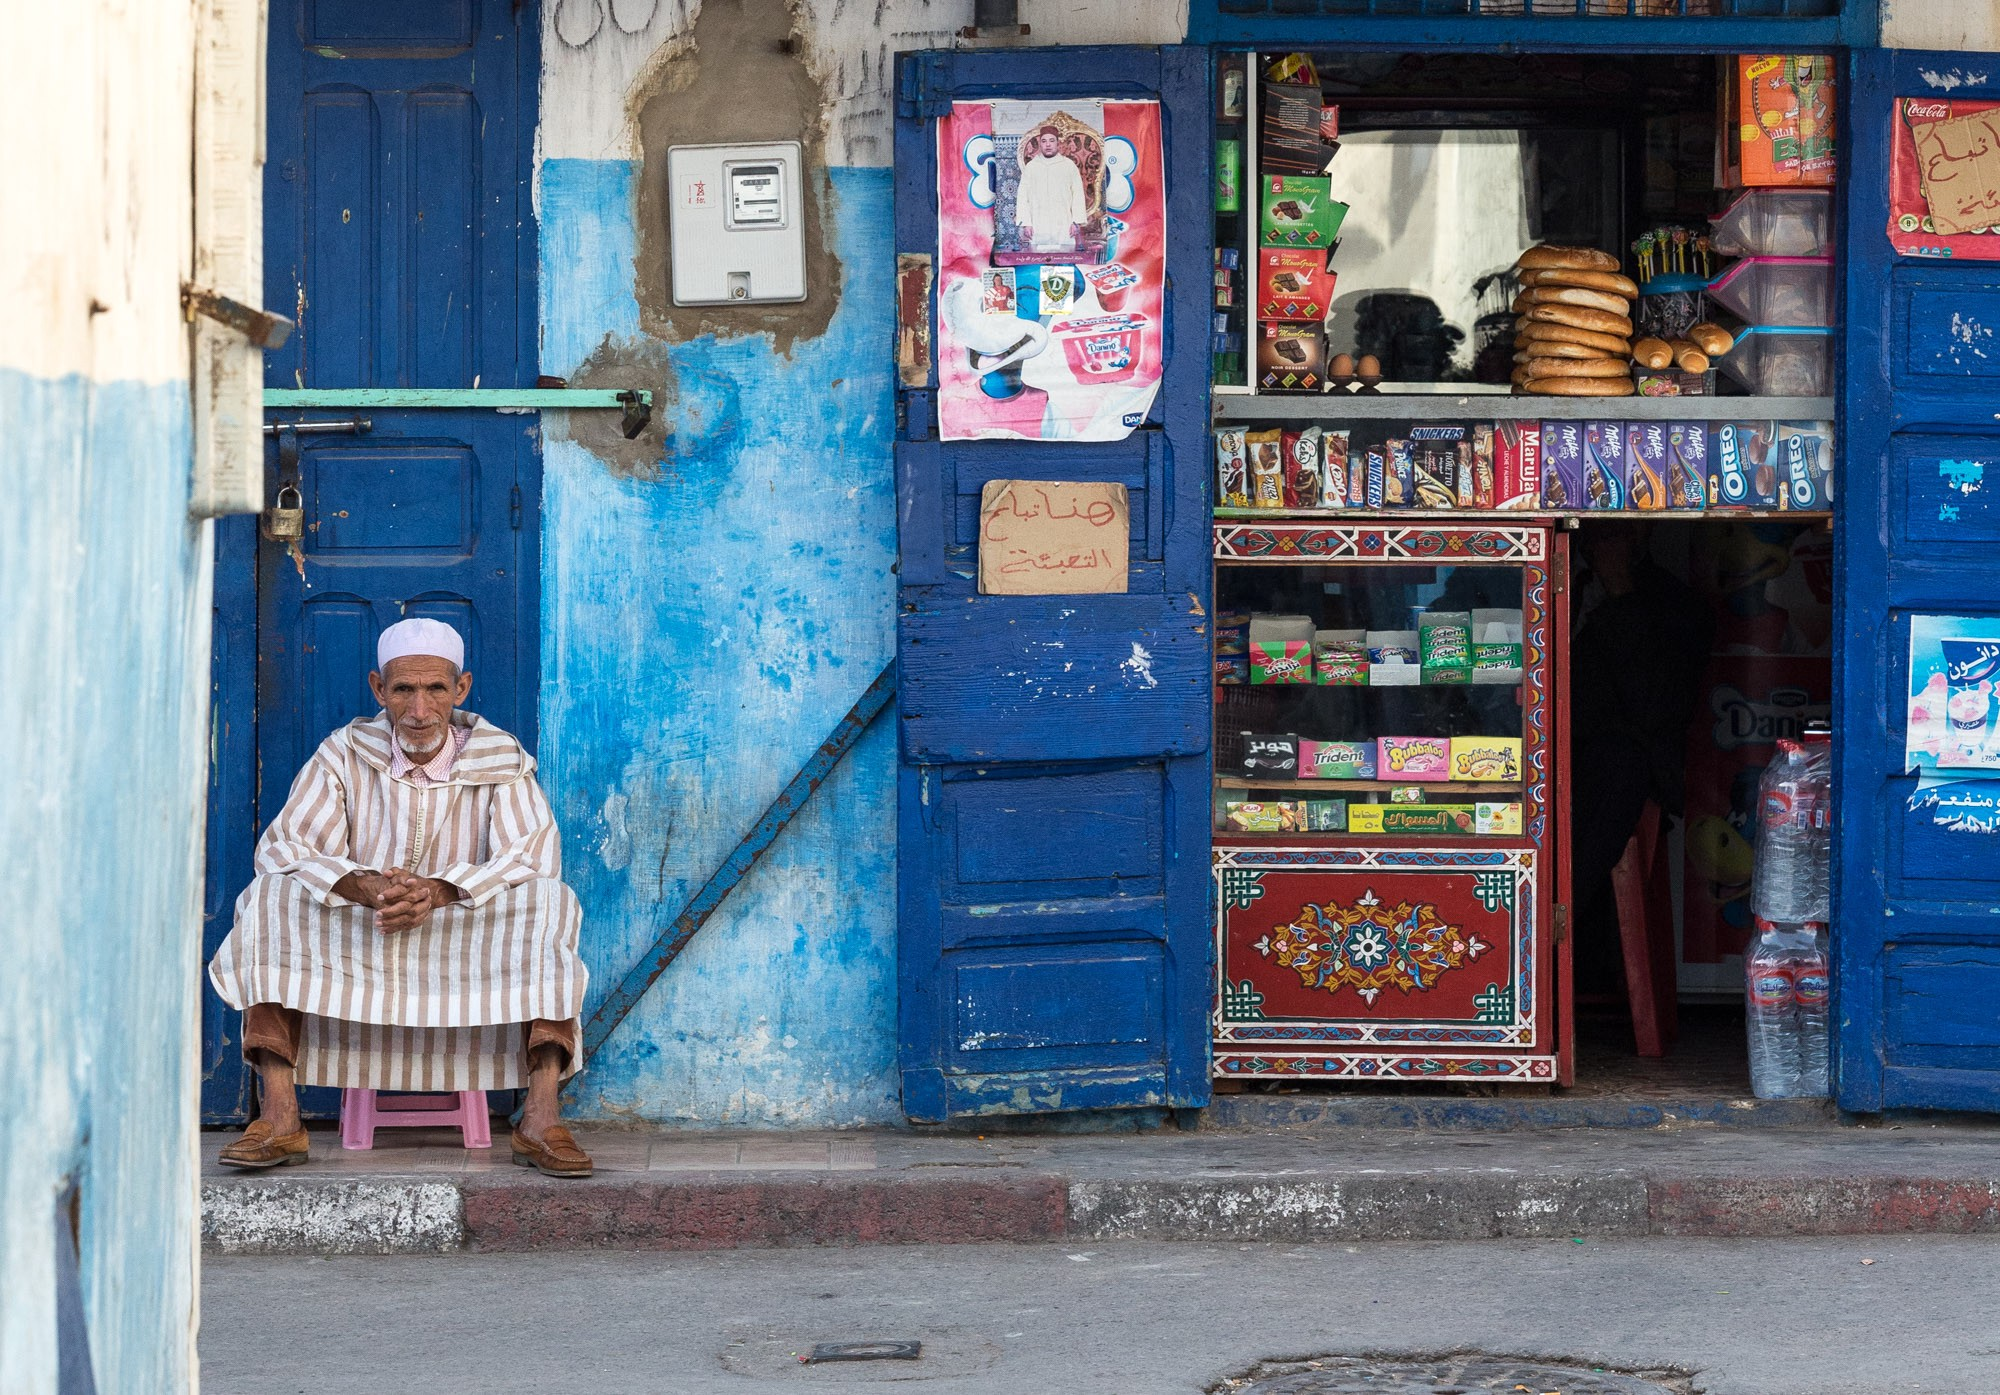 The profound beauty of a Muslim country